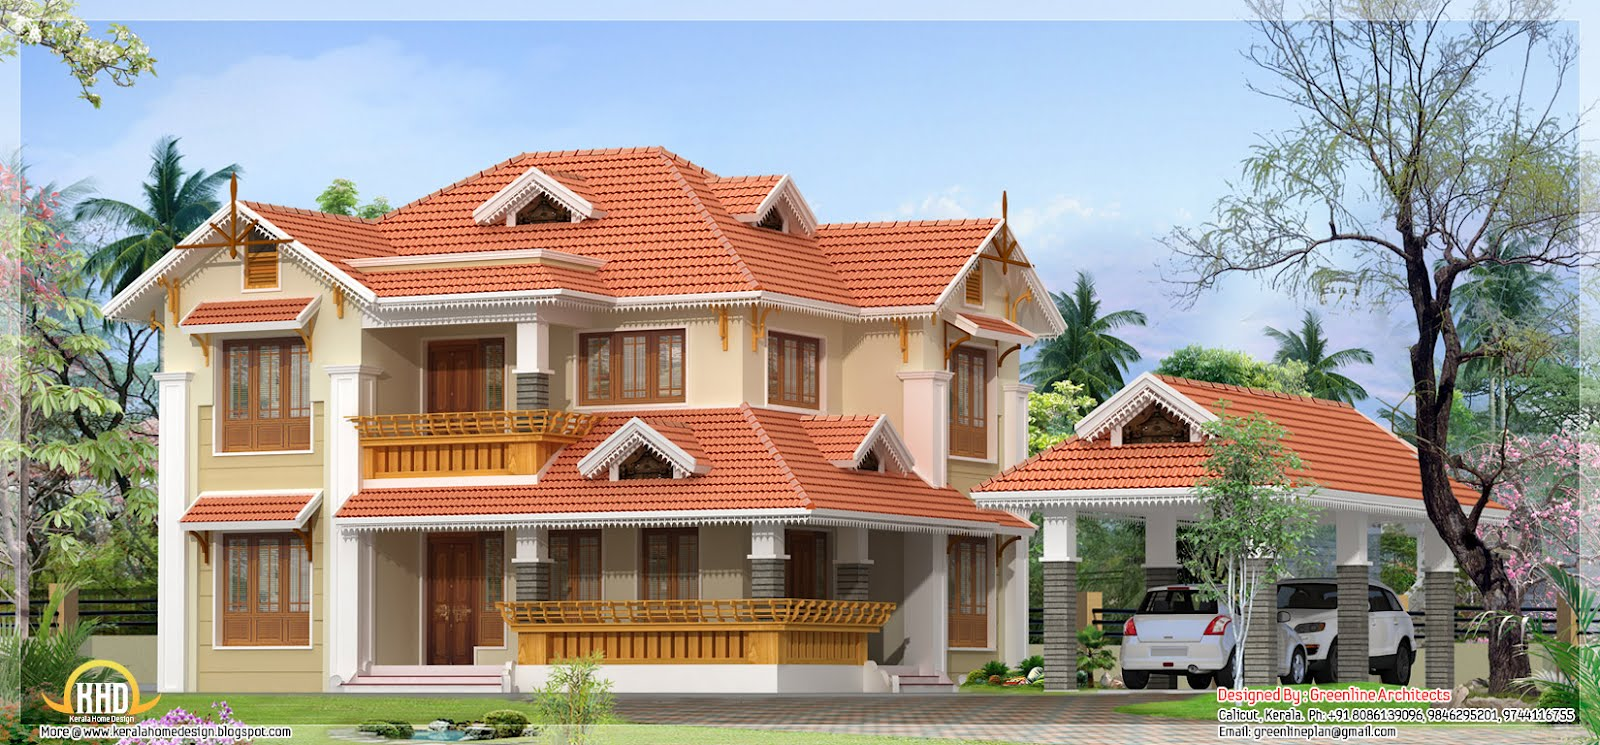 Square Yards Kerala Home Design By Greenline Architects Calicut Kerala